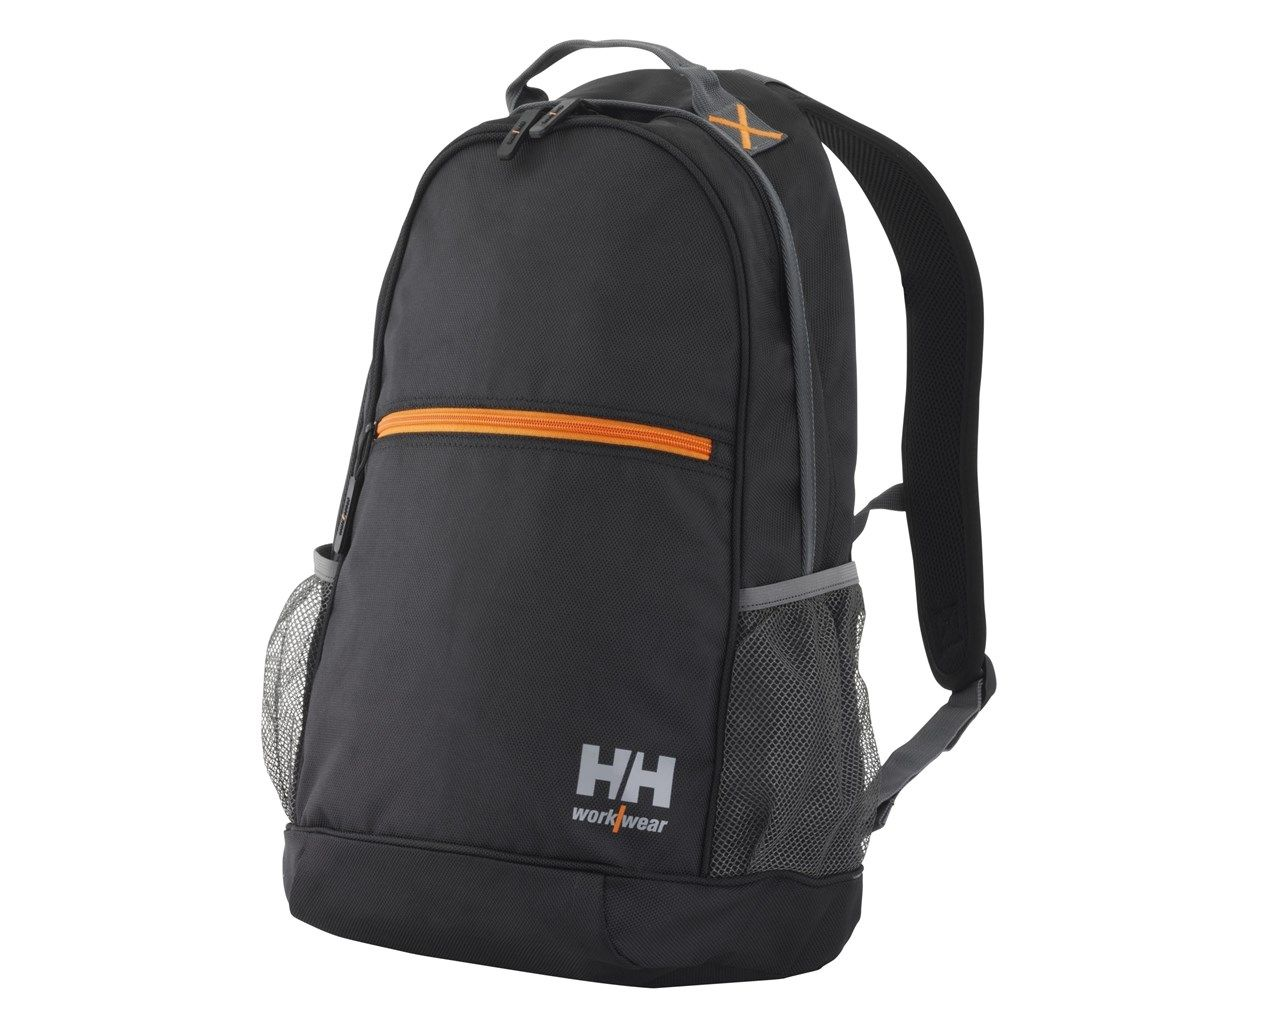 92c47d79c0f The Helly Hansen 30L Water Resistant Backpack is a functional accessory.  Its nylon water repellent shell helps keep your belongings safe from the  wet.